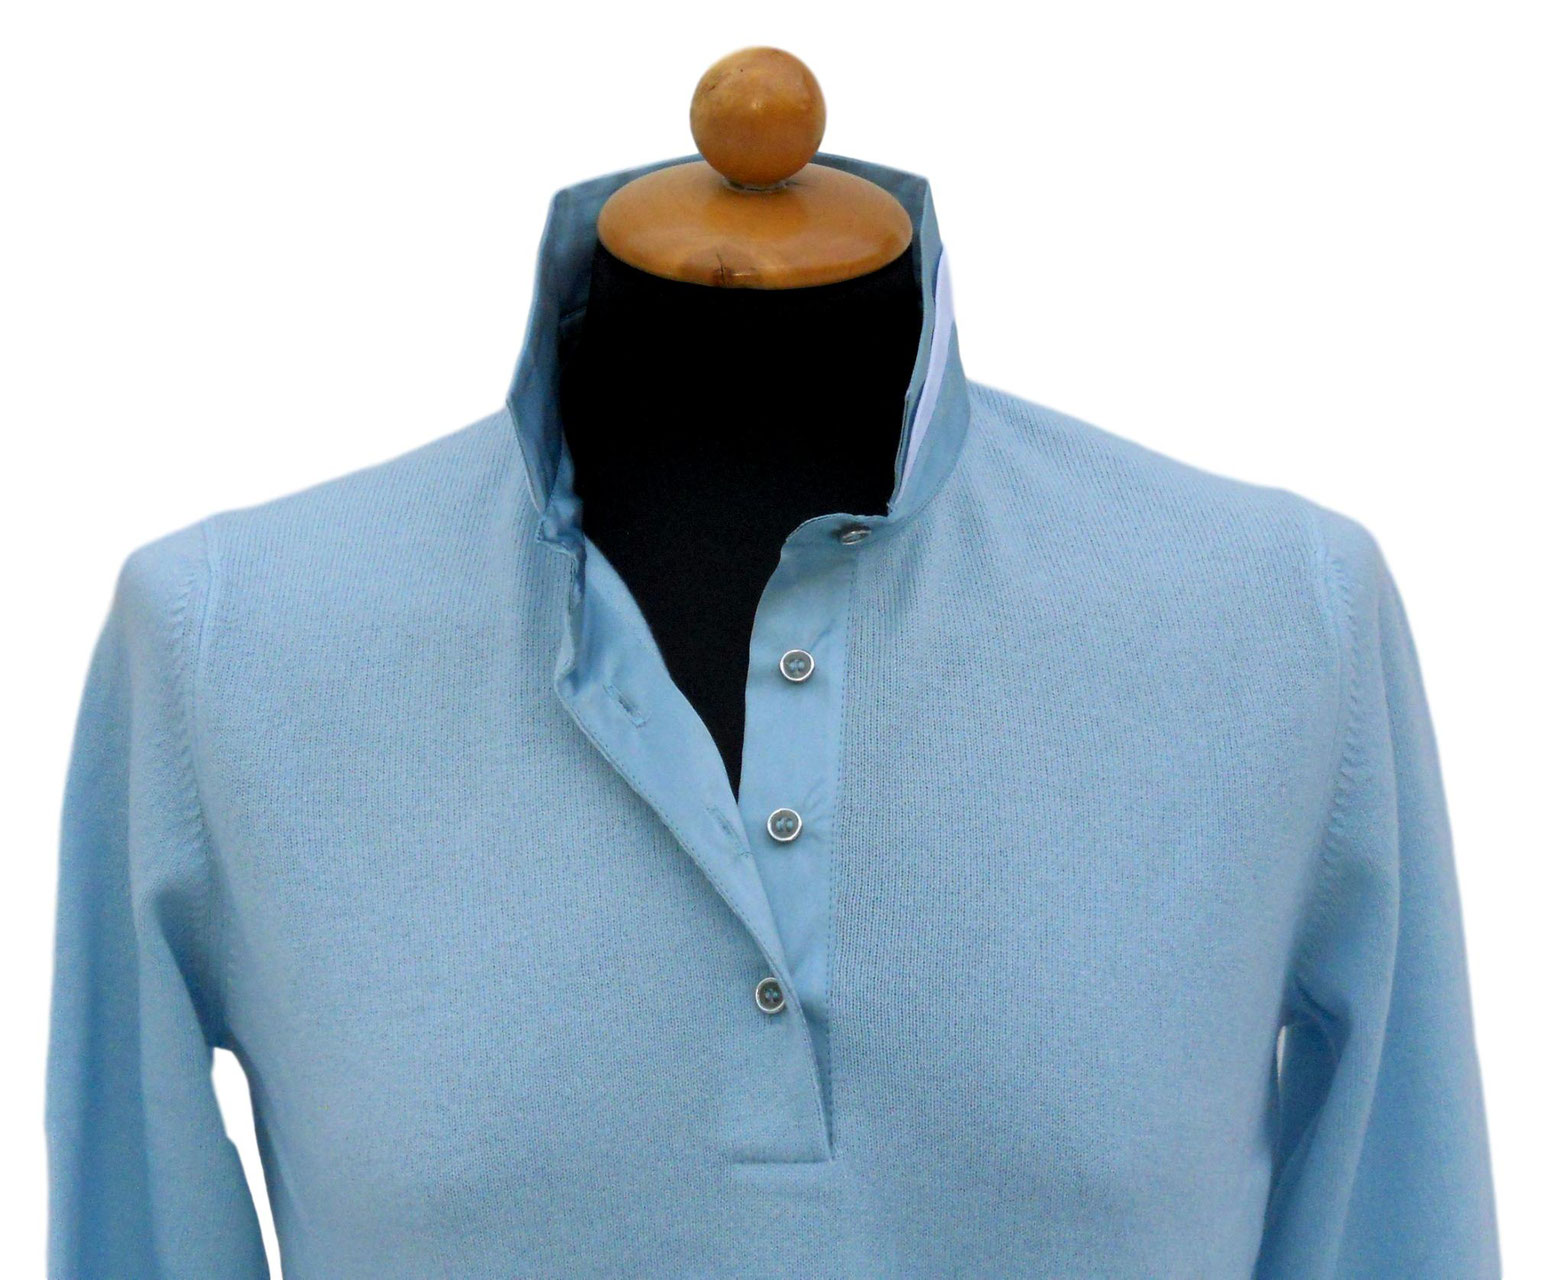 dcd42c0092 Polo Donna In Lana e Cashmere. Made in Italy.